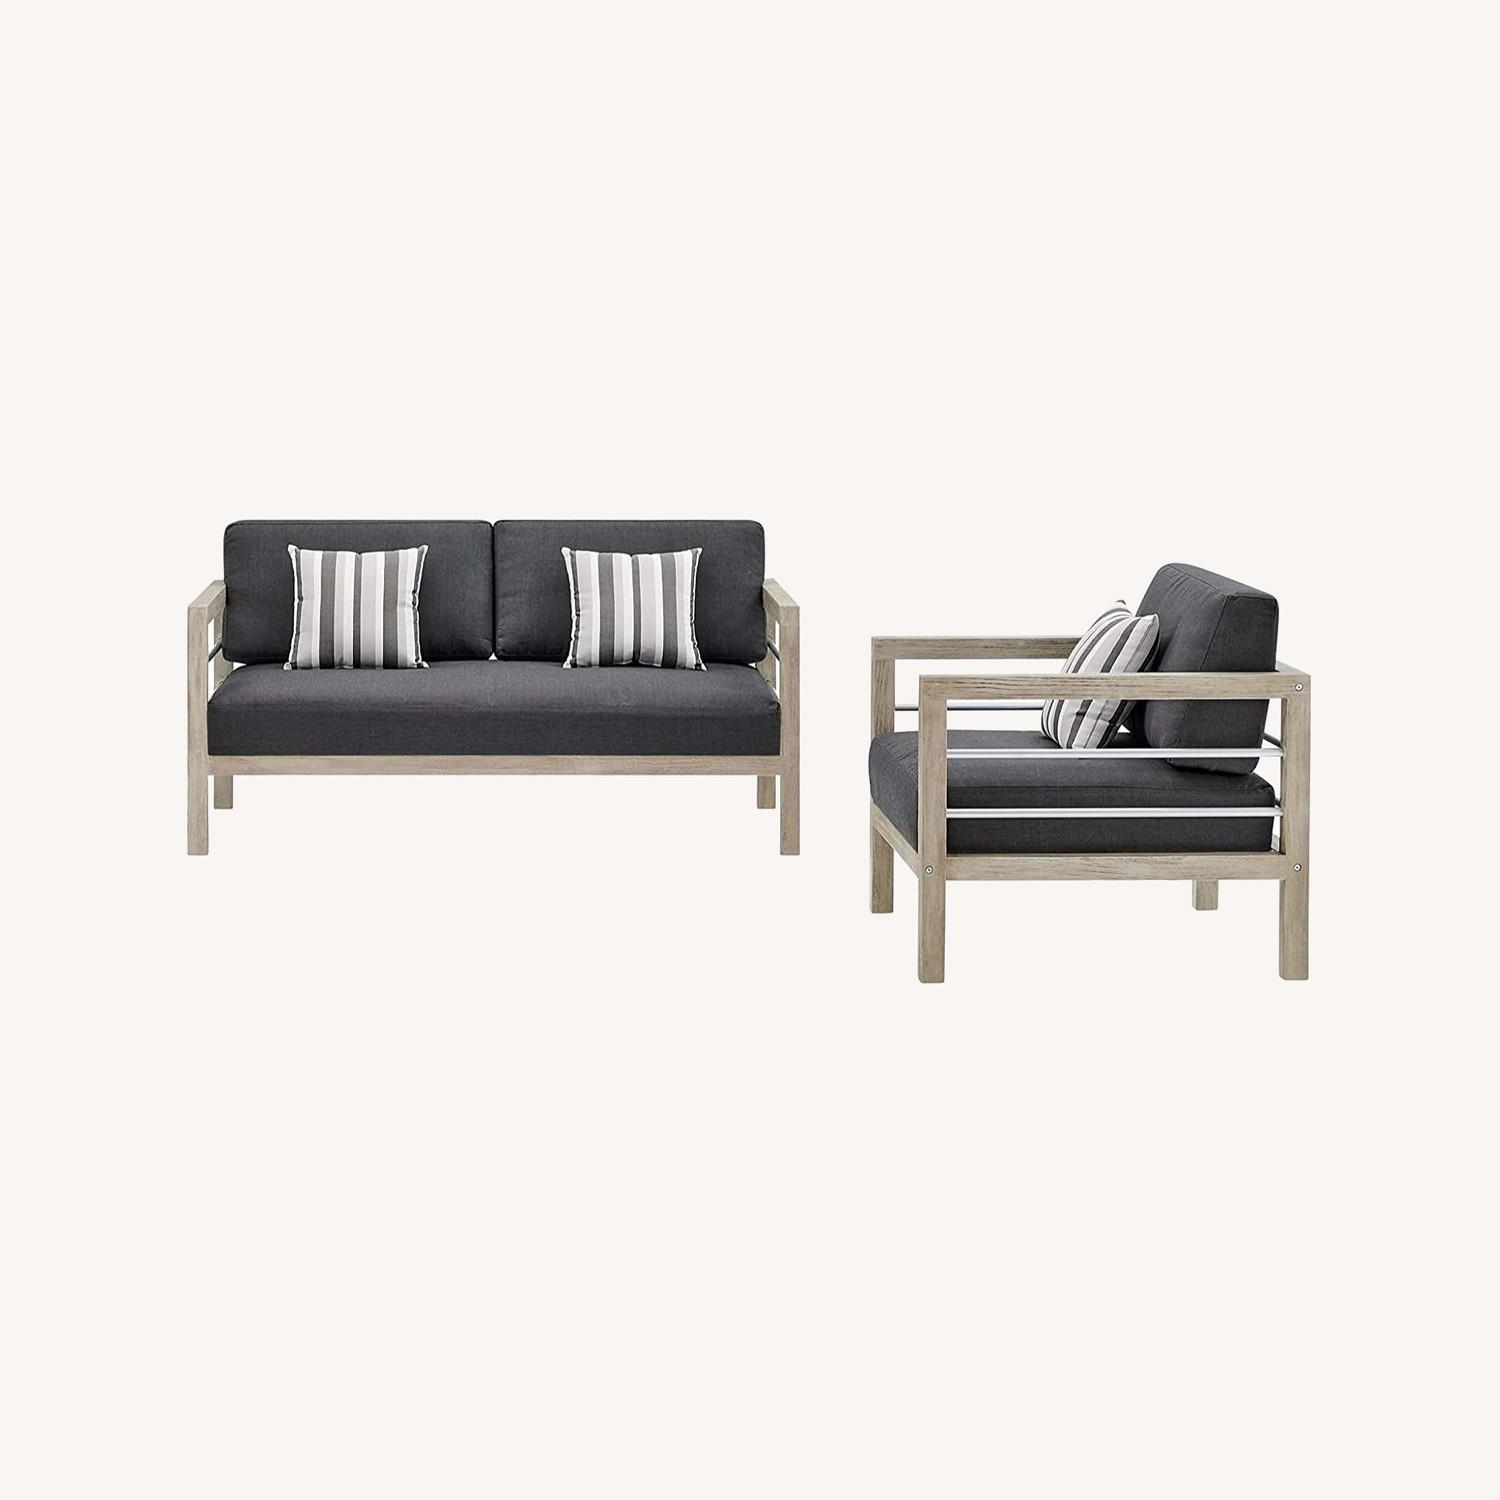 Outdoor Patio Set In Light Gray Wood Finish - image-12